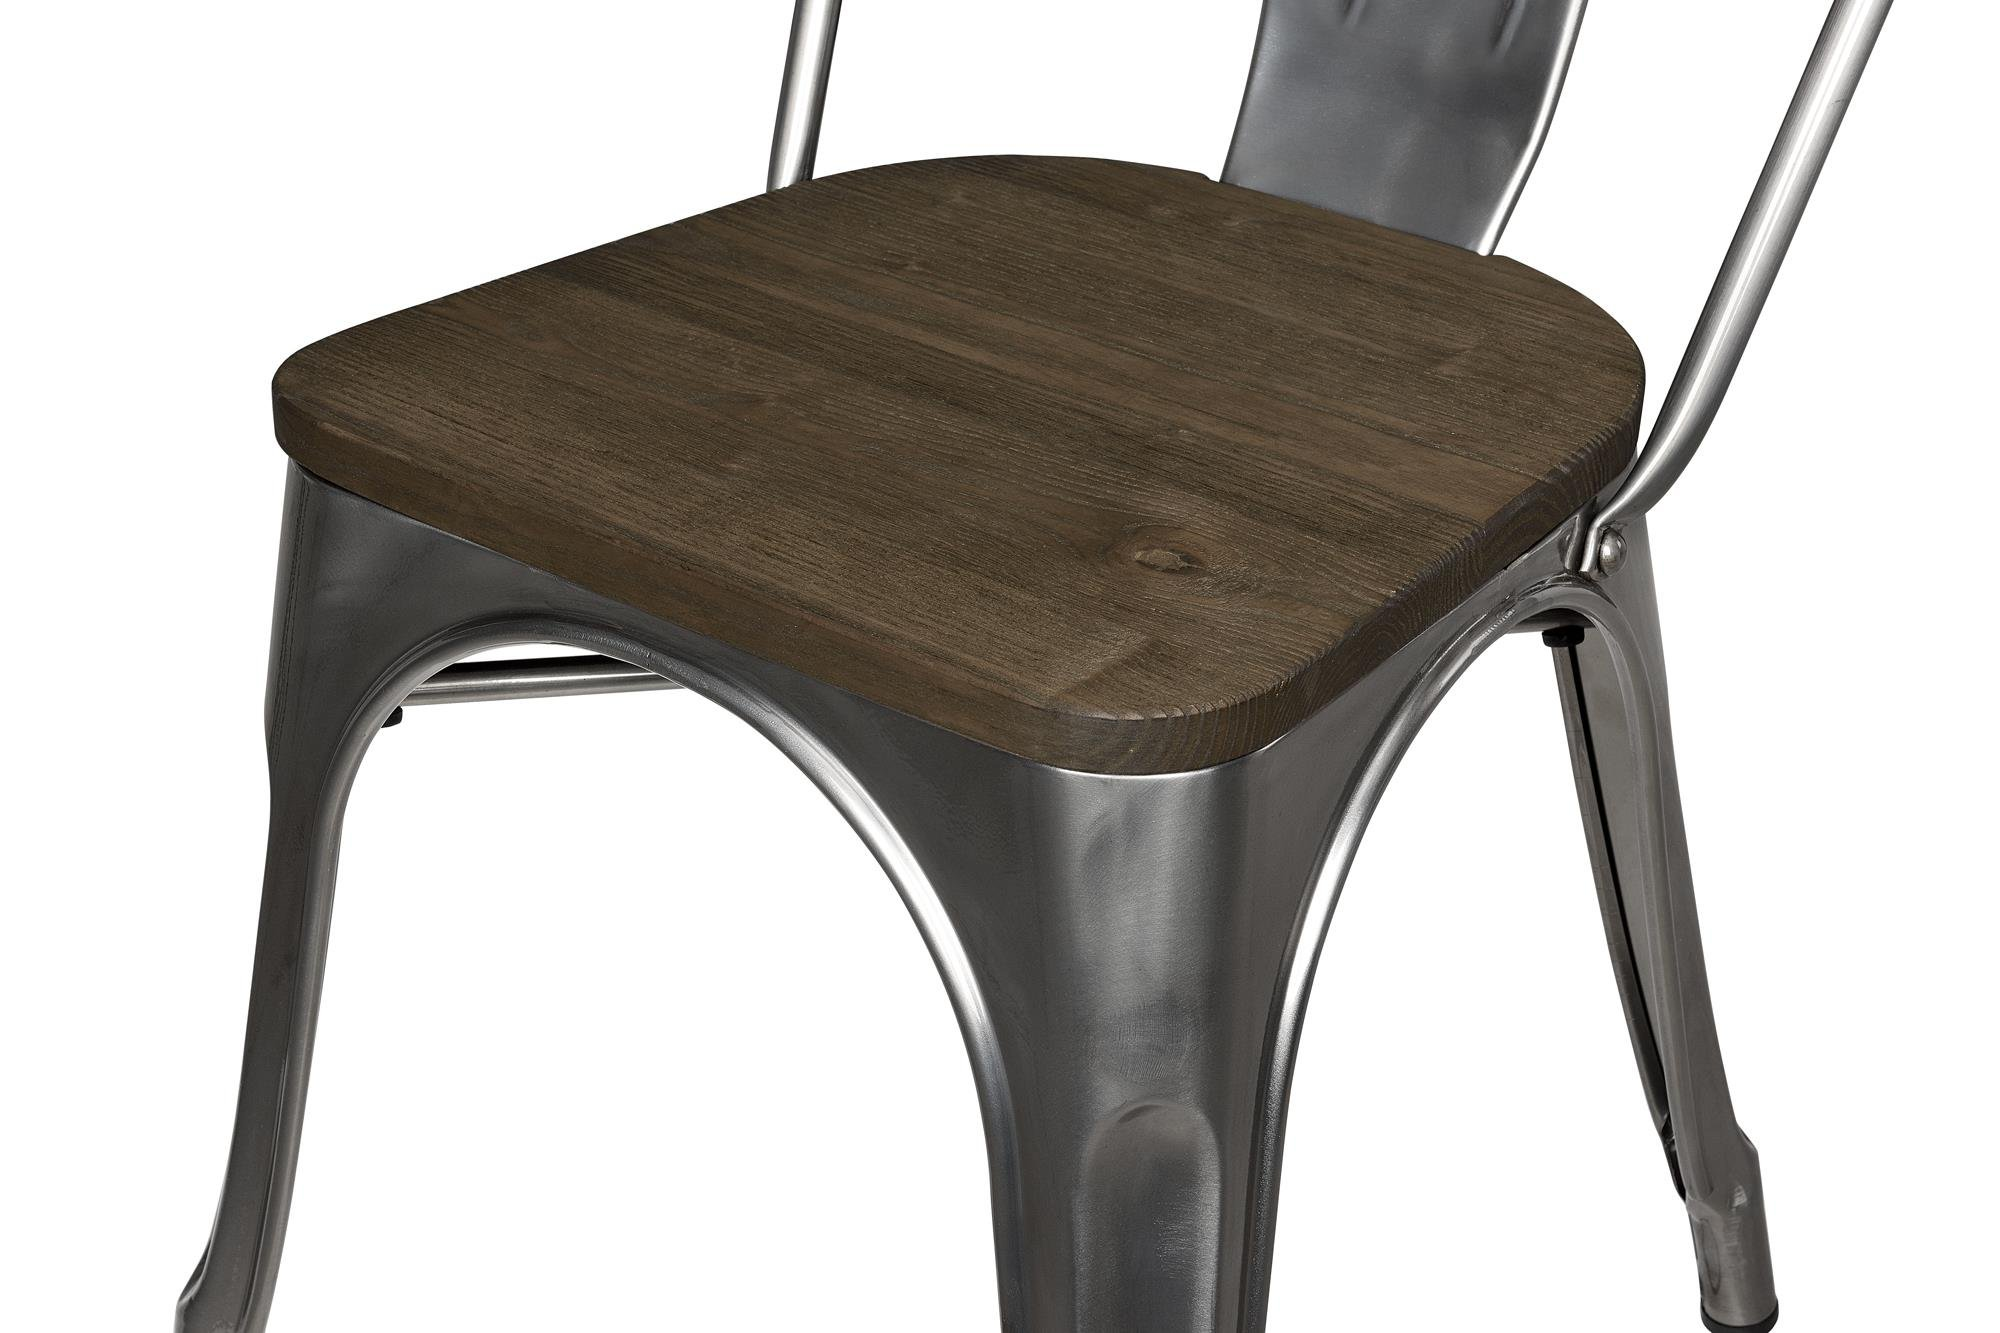 DHP Fusion Metal Dining Chair with Wood Seat, Set of two, Antique Gunmetal by DHP (Image #3)